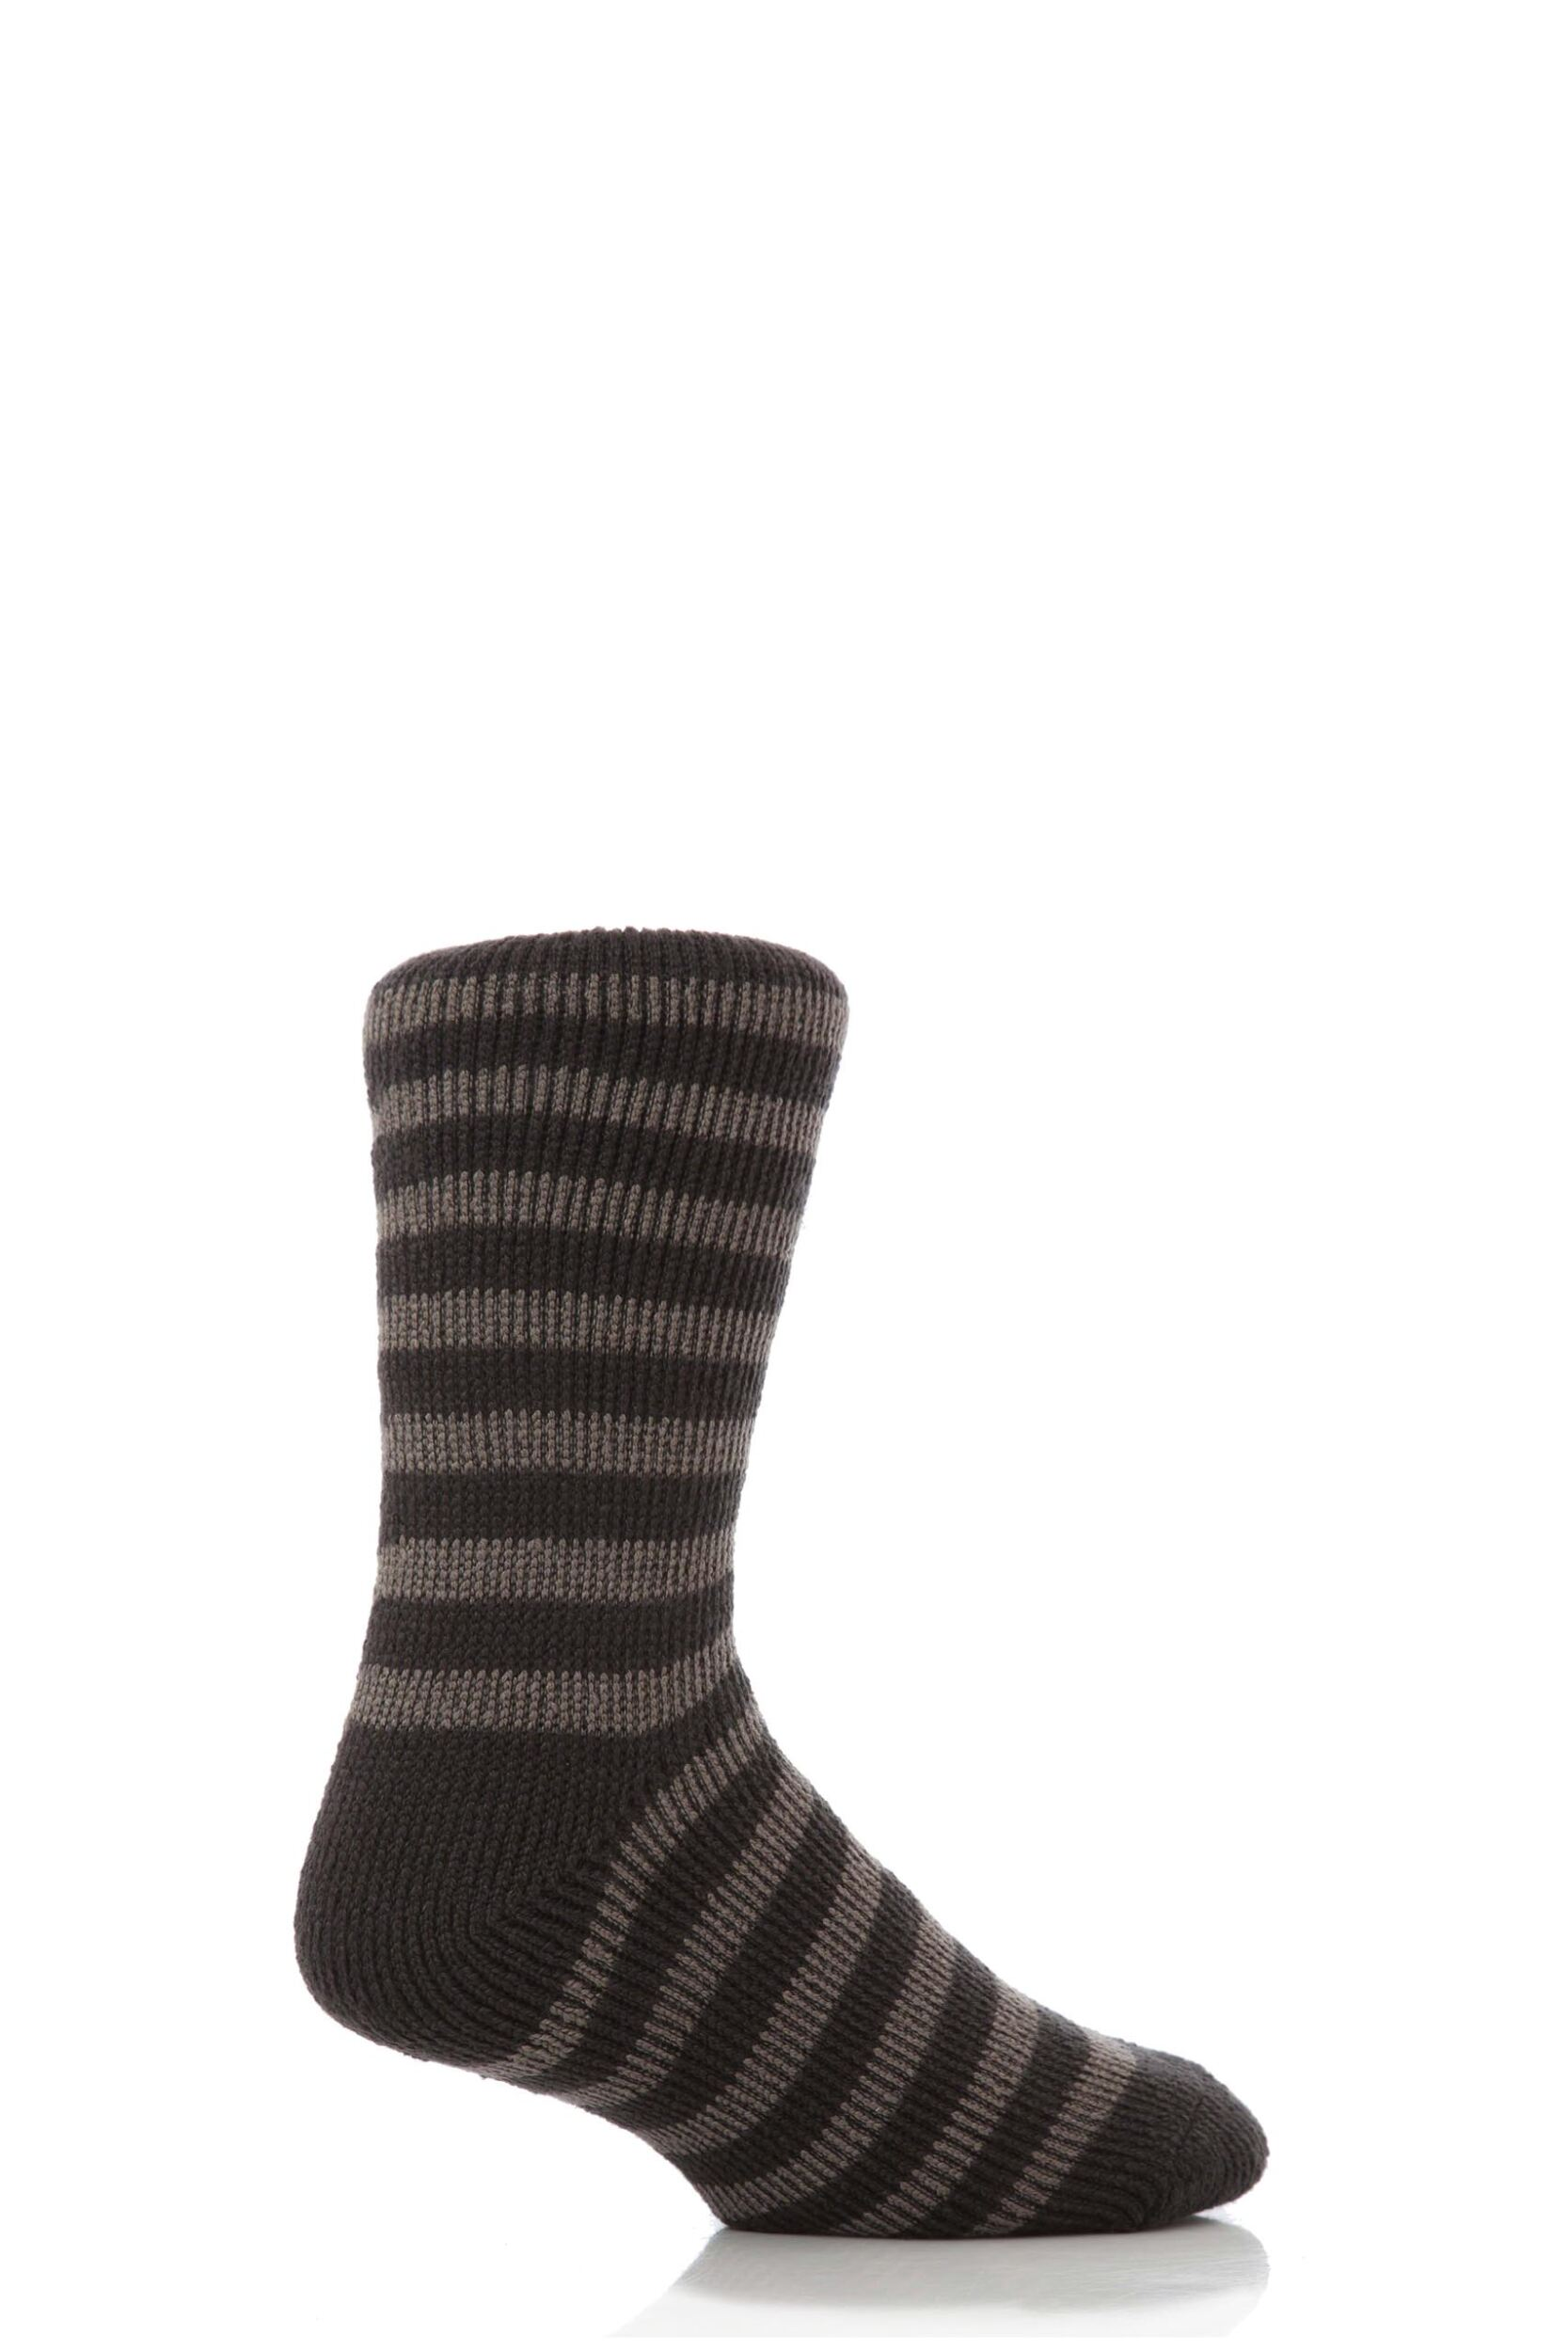 mens 1 pair sockshop heat holders two tone striped thermal. Black Bedroom Furniture Sets. Home Design Ideas